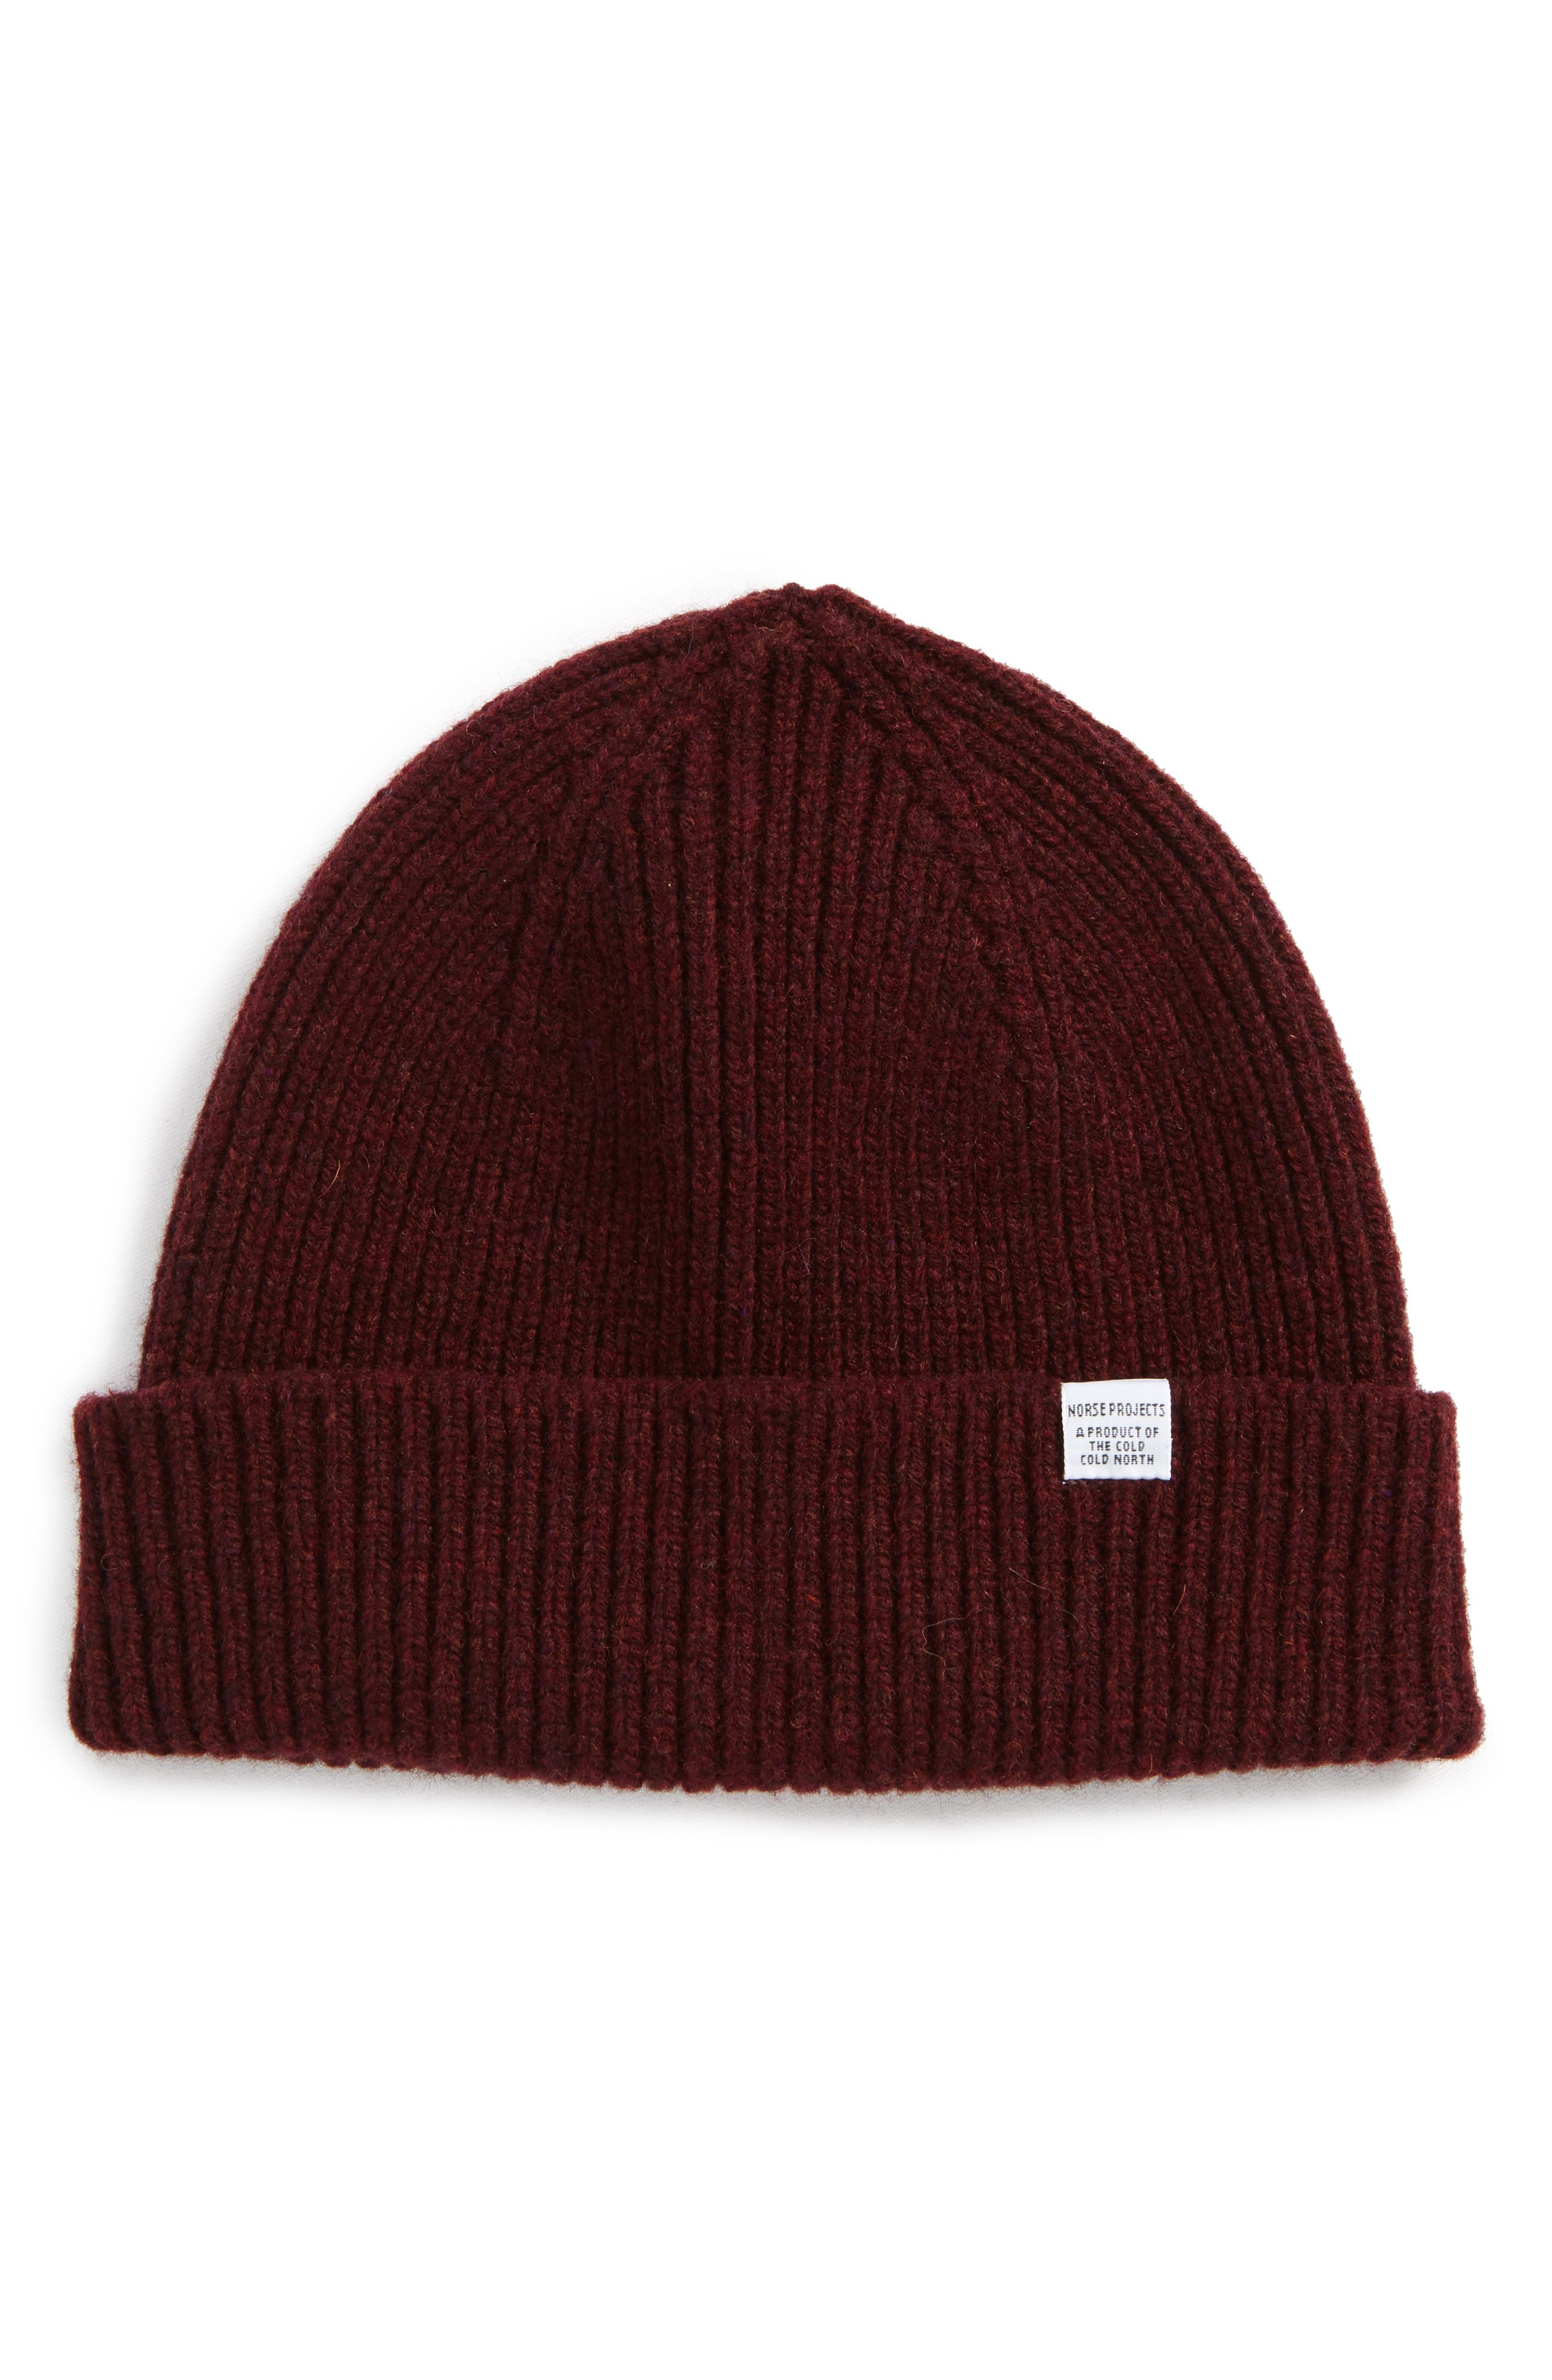 Norse Projects Lambswool Rib Knit Cap